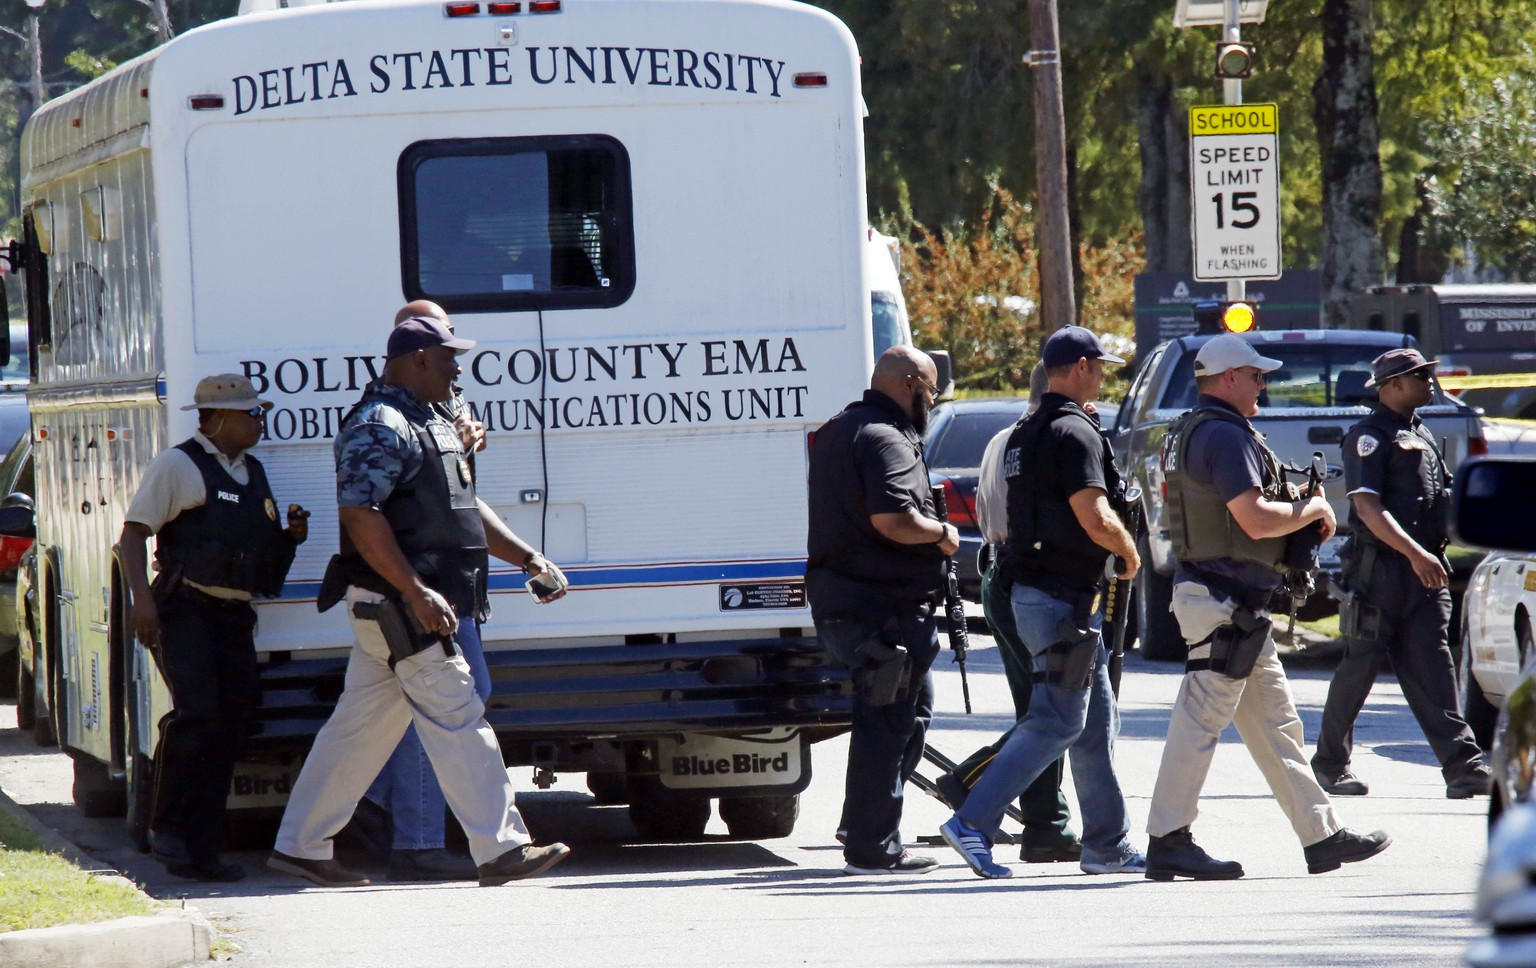 Law enforcement walk across the Delta State University campus to search for an active shooter in connection with a the shooting of history professor Ethan Schmidt in his office in Cleveland, Miss., Monday, Sept. 14, 2015. (AP Photo/Rogelio V. Solis)